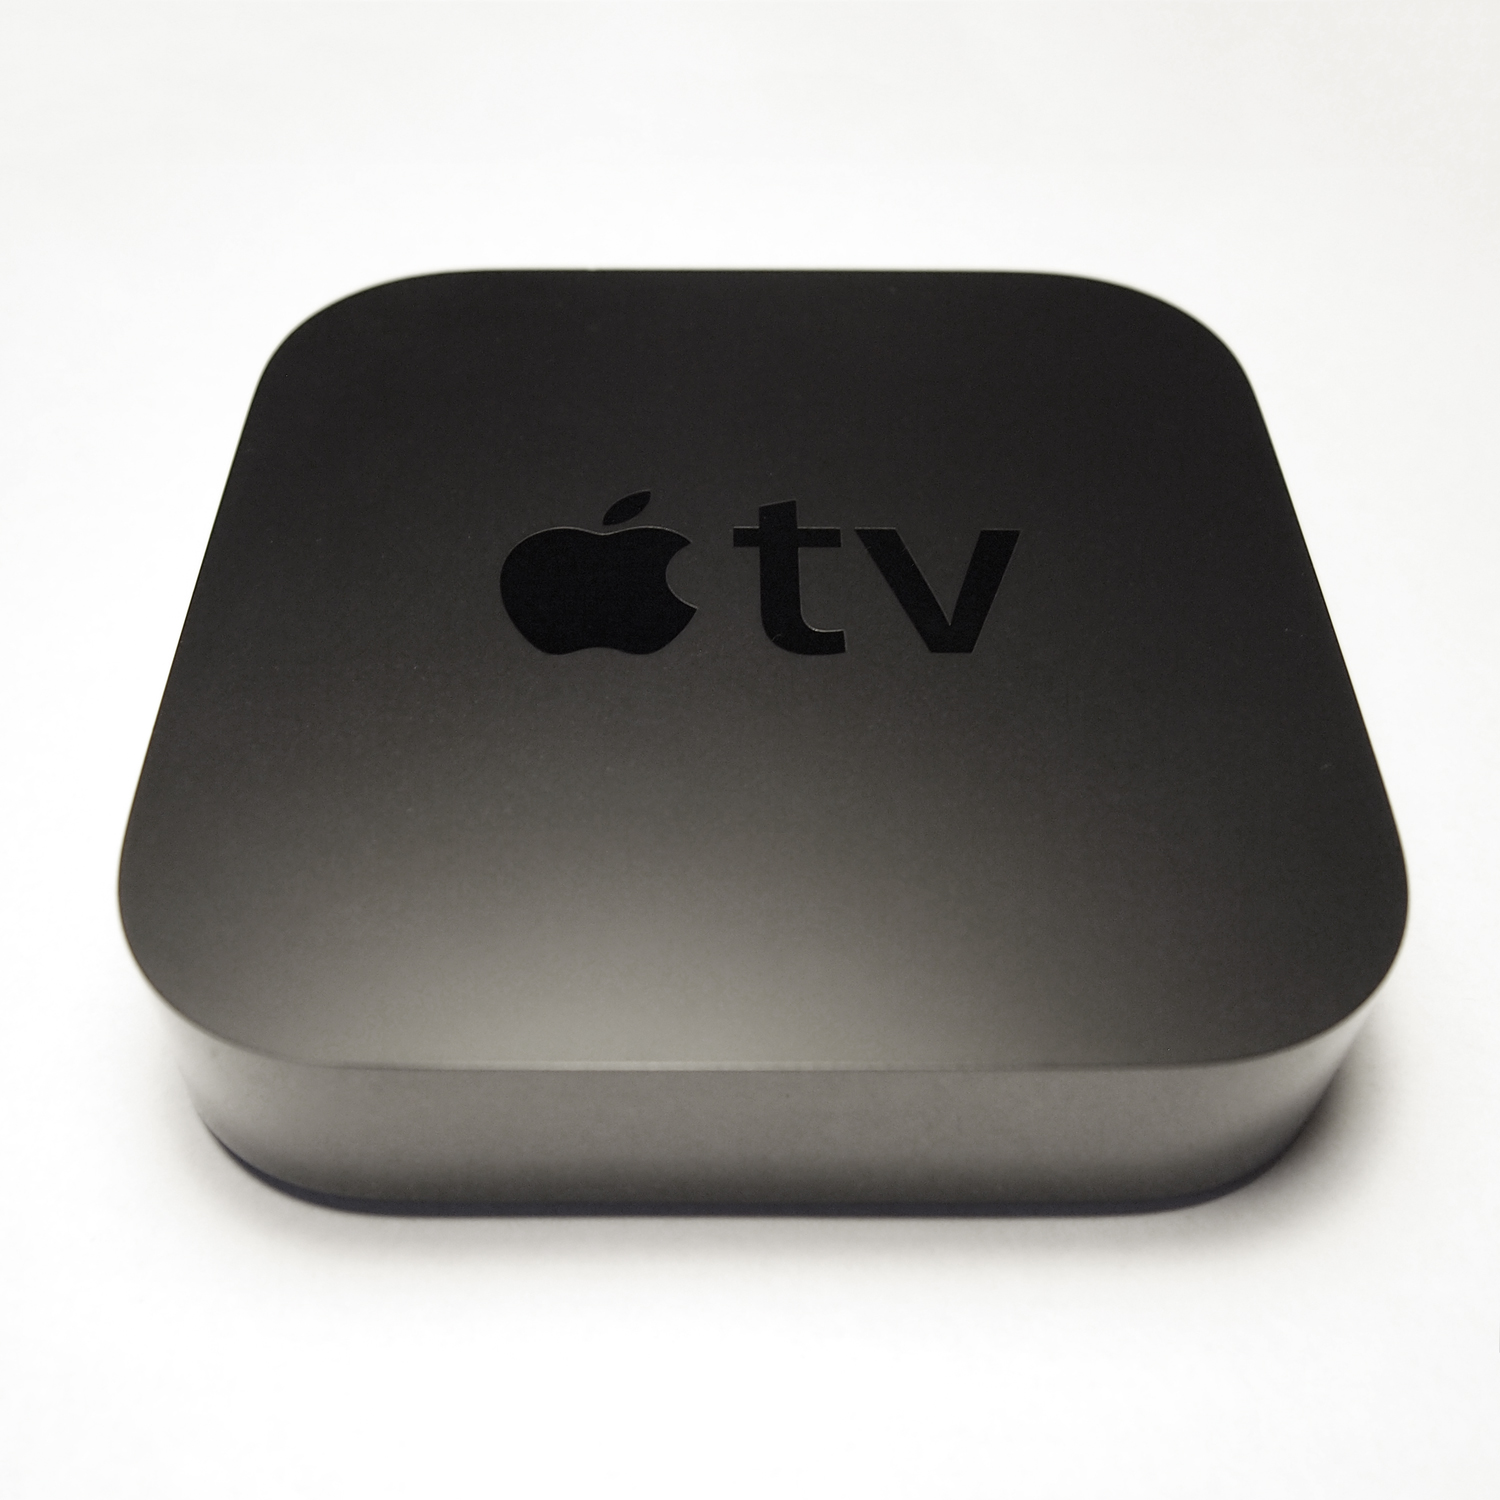 Apple tv software update not successful at dating